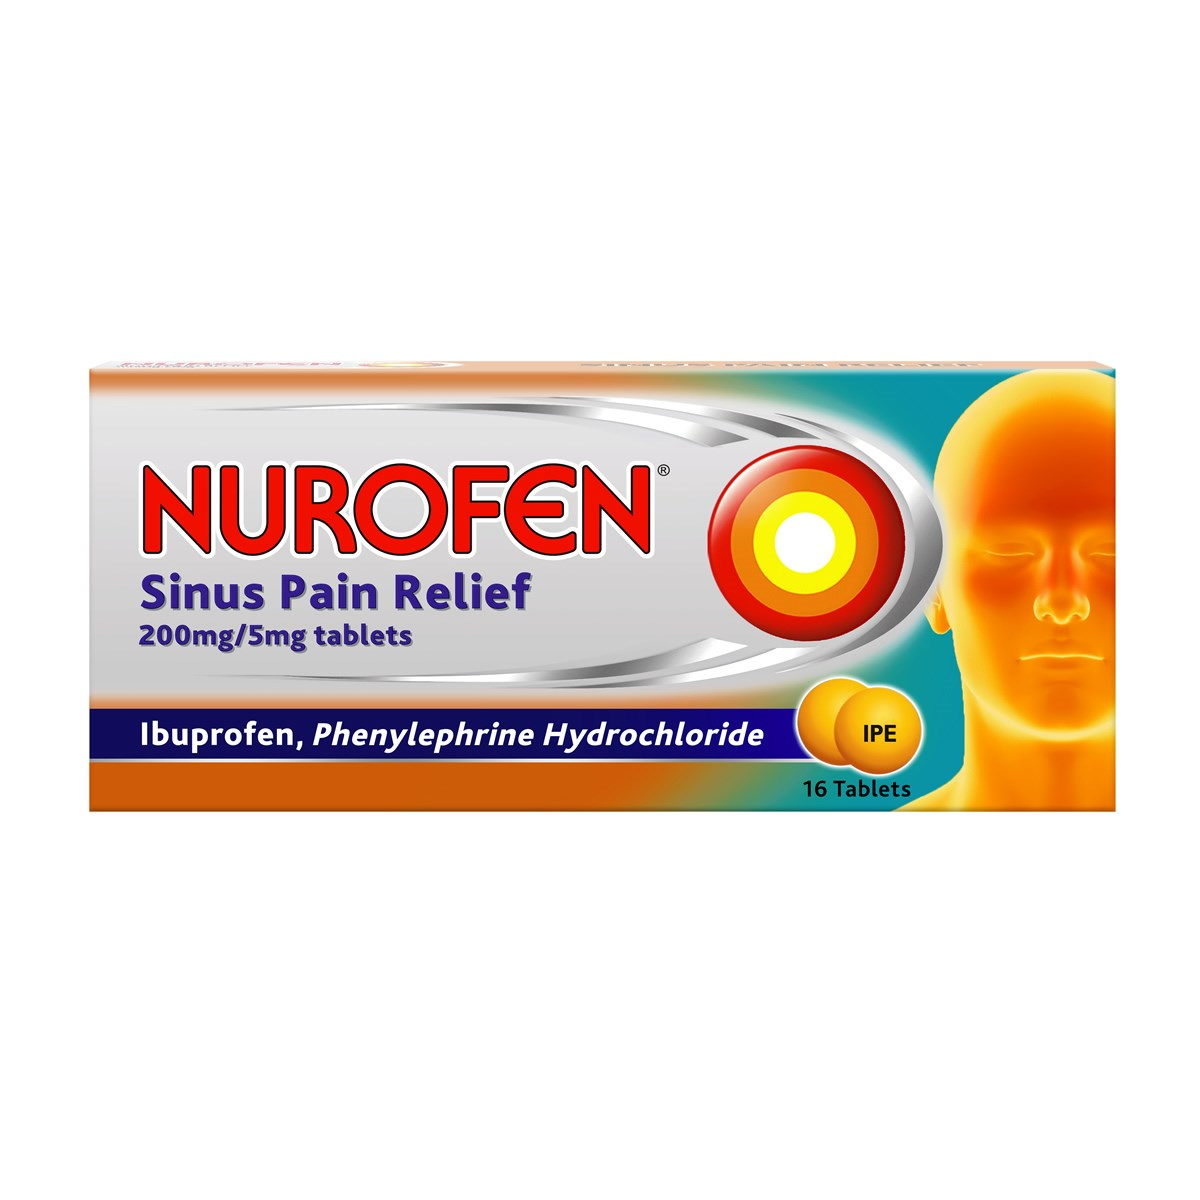 Nurofen Sinus Pain Relief 200mg/5mg Tablets